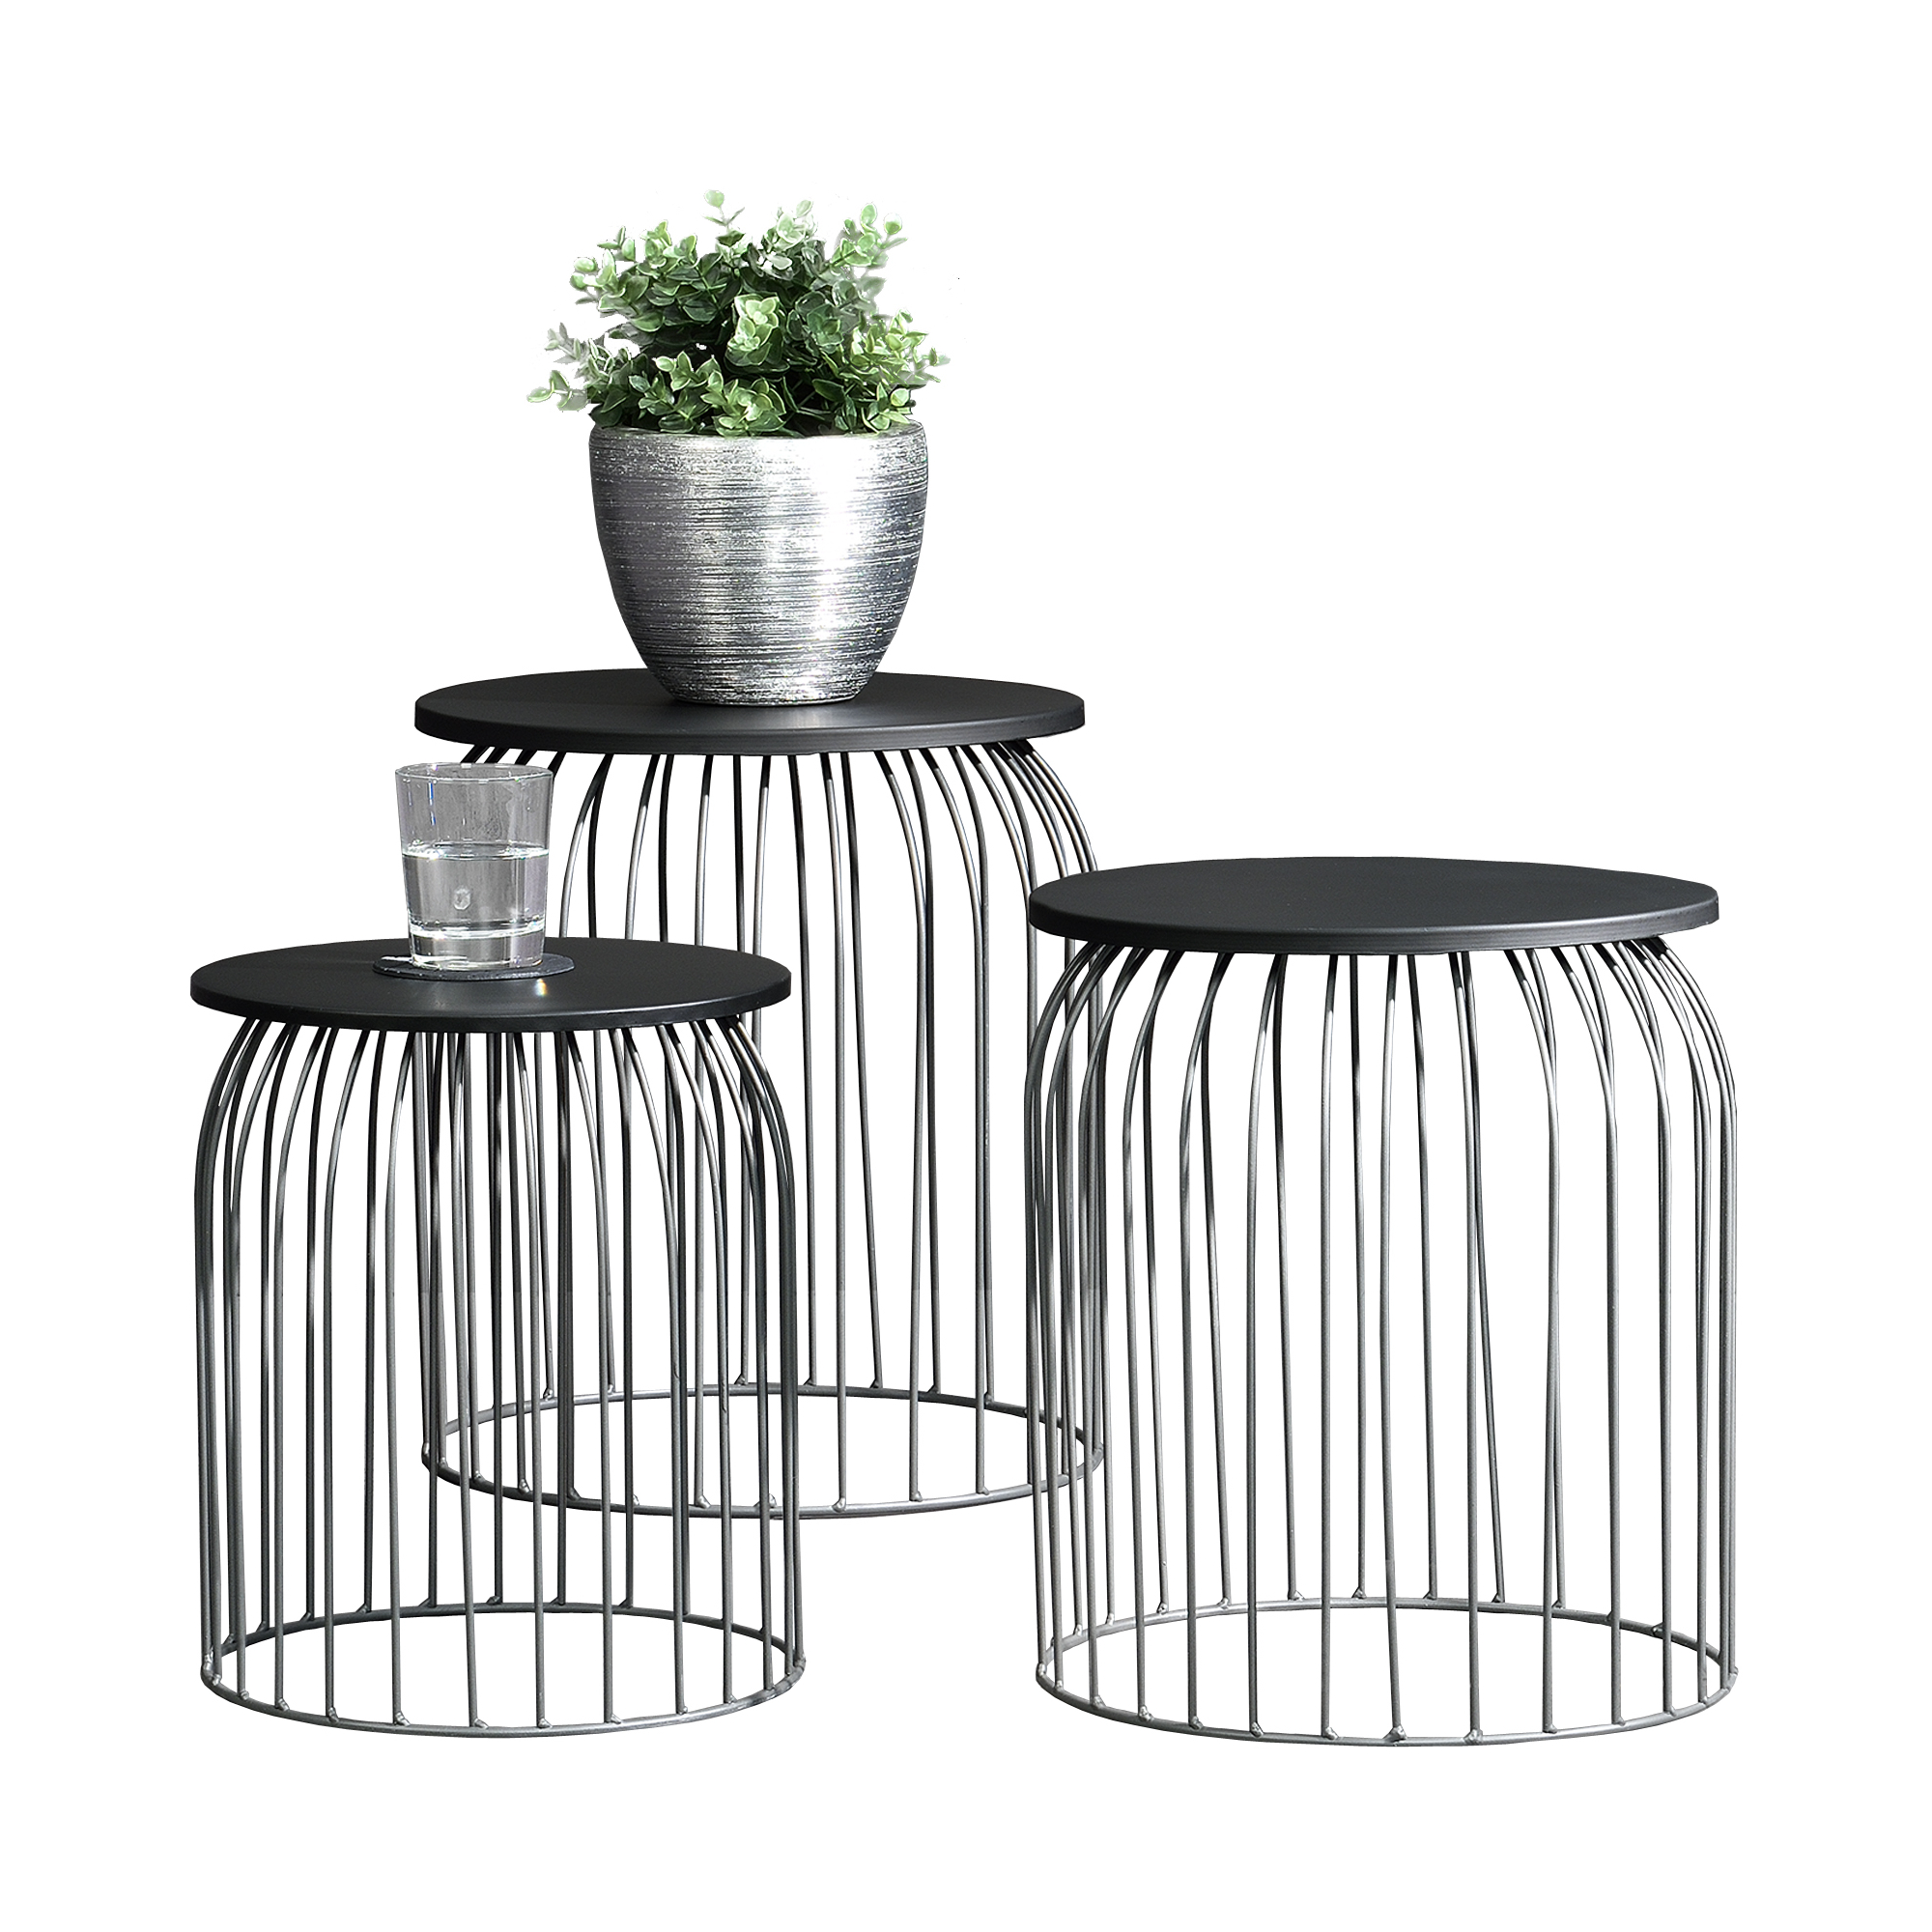 metallkorb beistelltisch couchtisch sofatisch 3er set deko dunkelgrau ebay. Black Bedroom Furniture Sets. Home Design Ideas